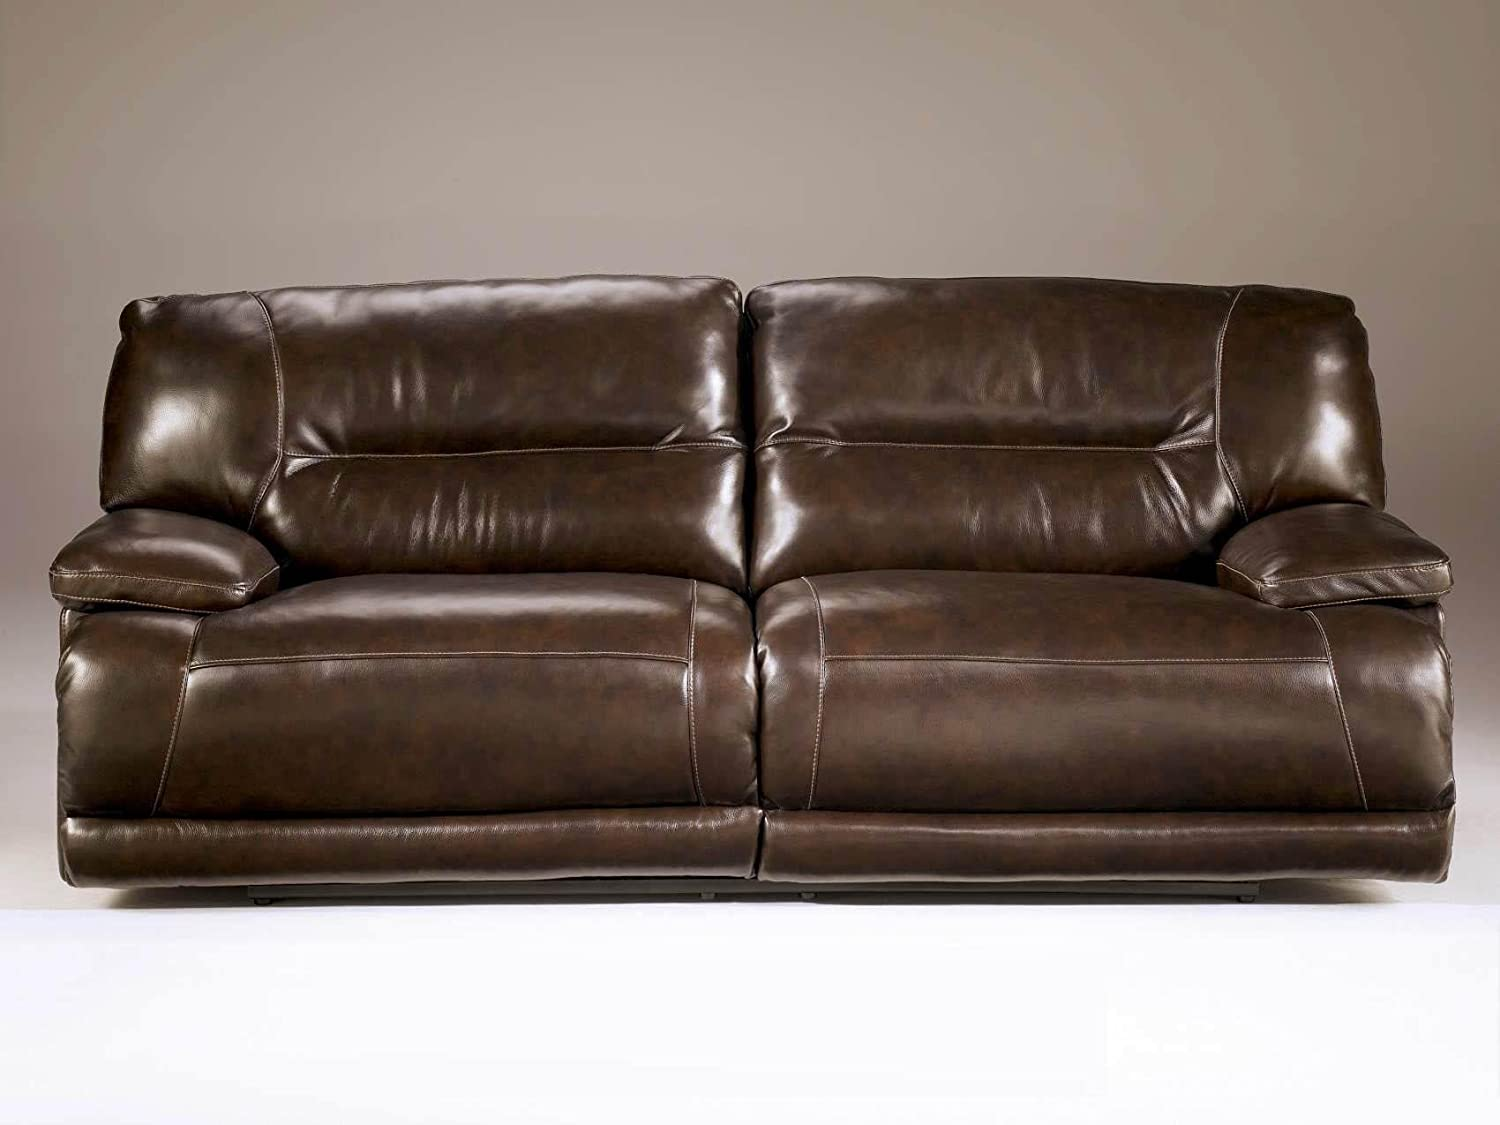 Merveilleux Amazon.com: Ashley Furniture Signature Design   Exhilaration Recliner Sofa    Power Reclining Couch   Chocolate Brown: Kitchen U0026 Dining